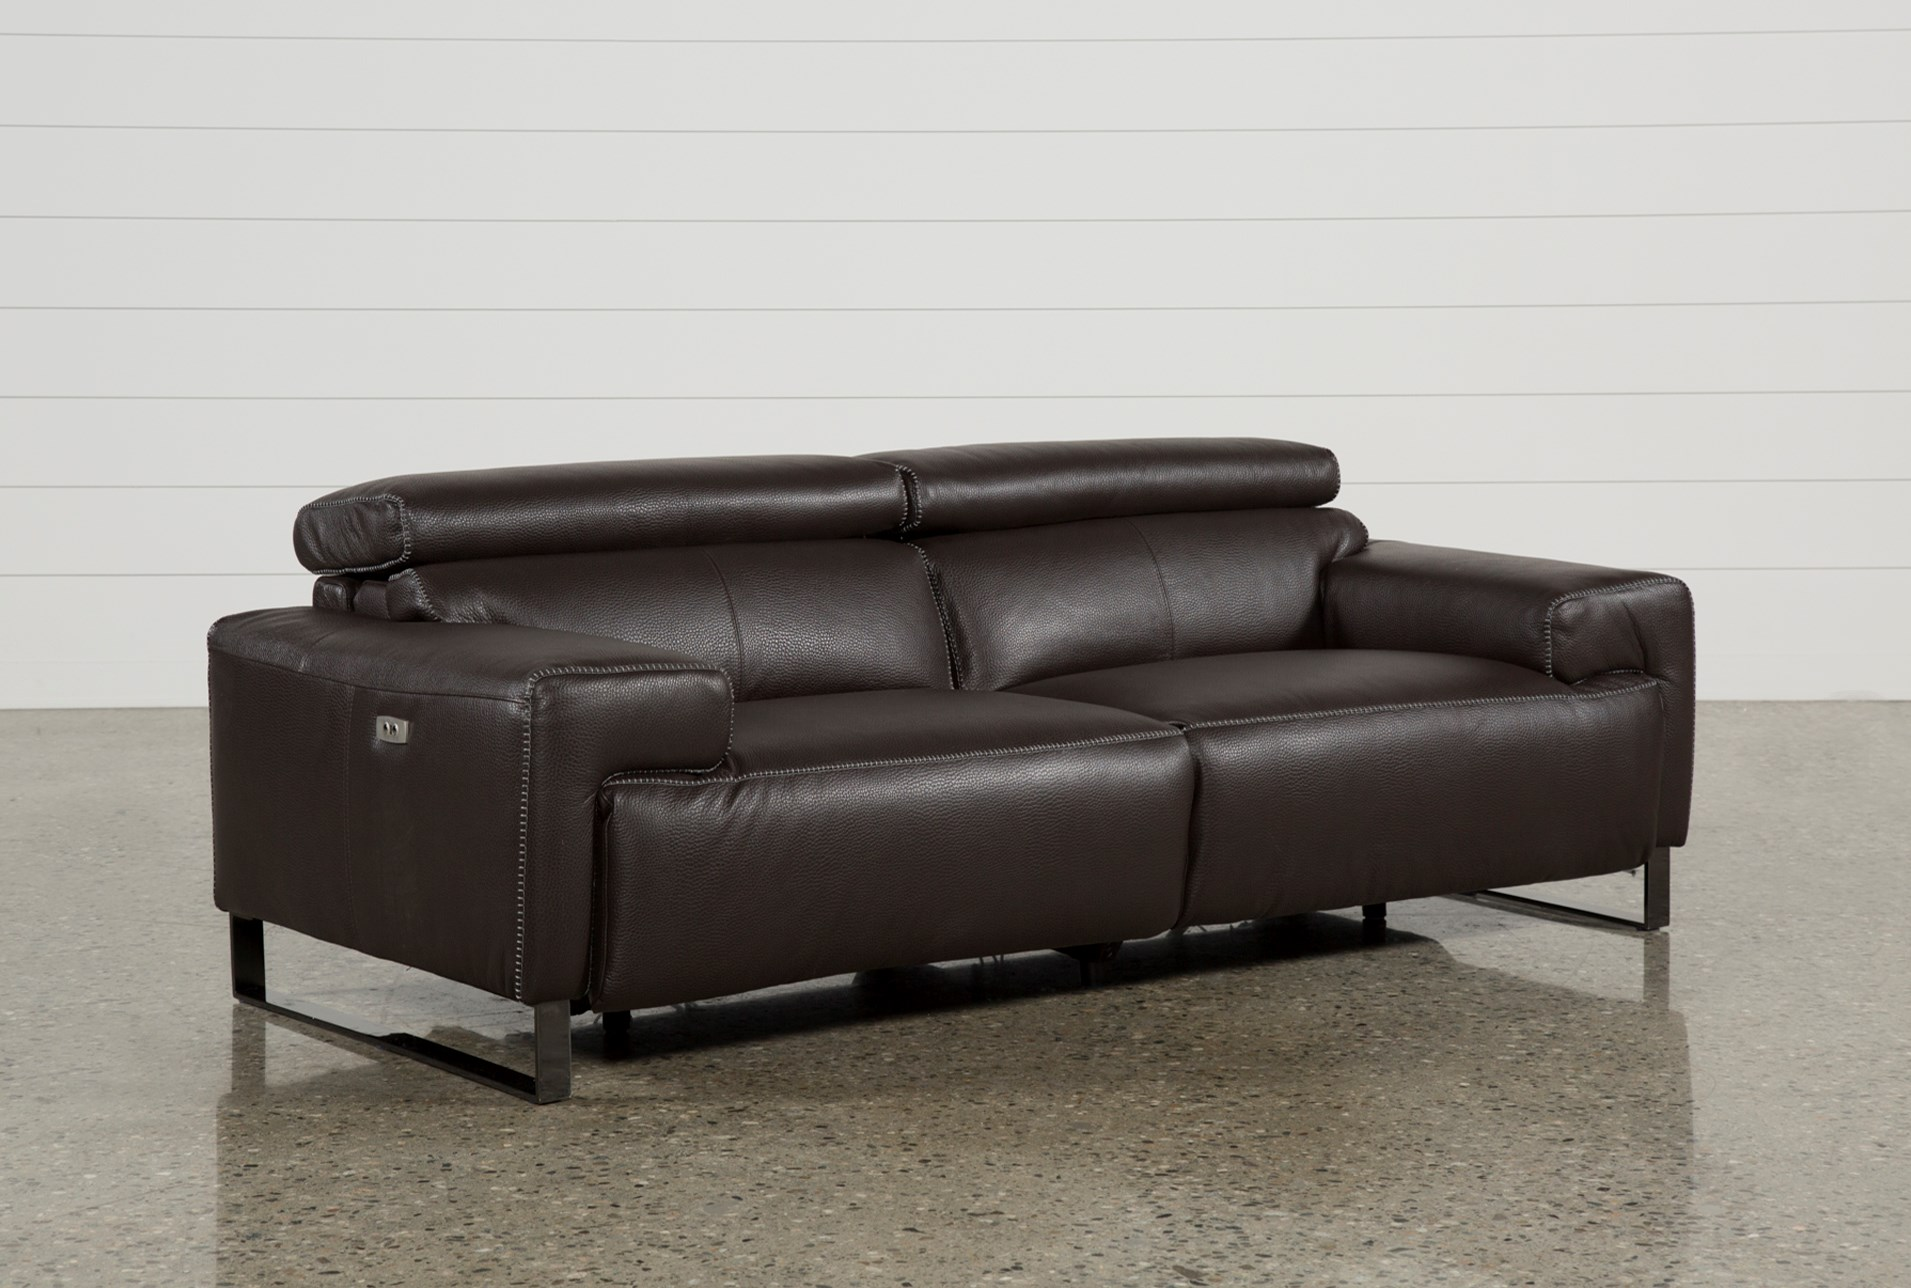 theater recliner shop power headrests adjustable sofa leather reclining sofas storage seats delange armrests in with